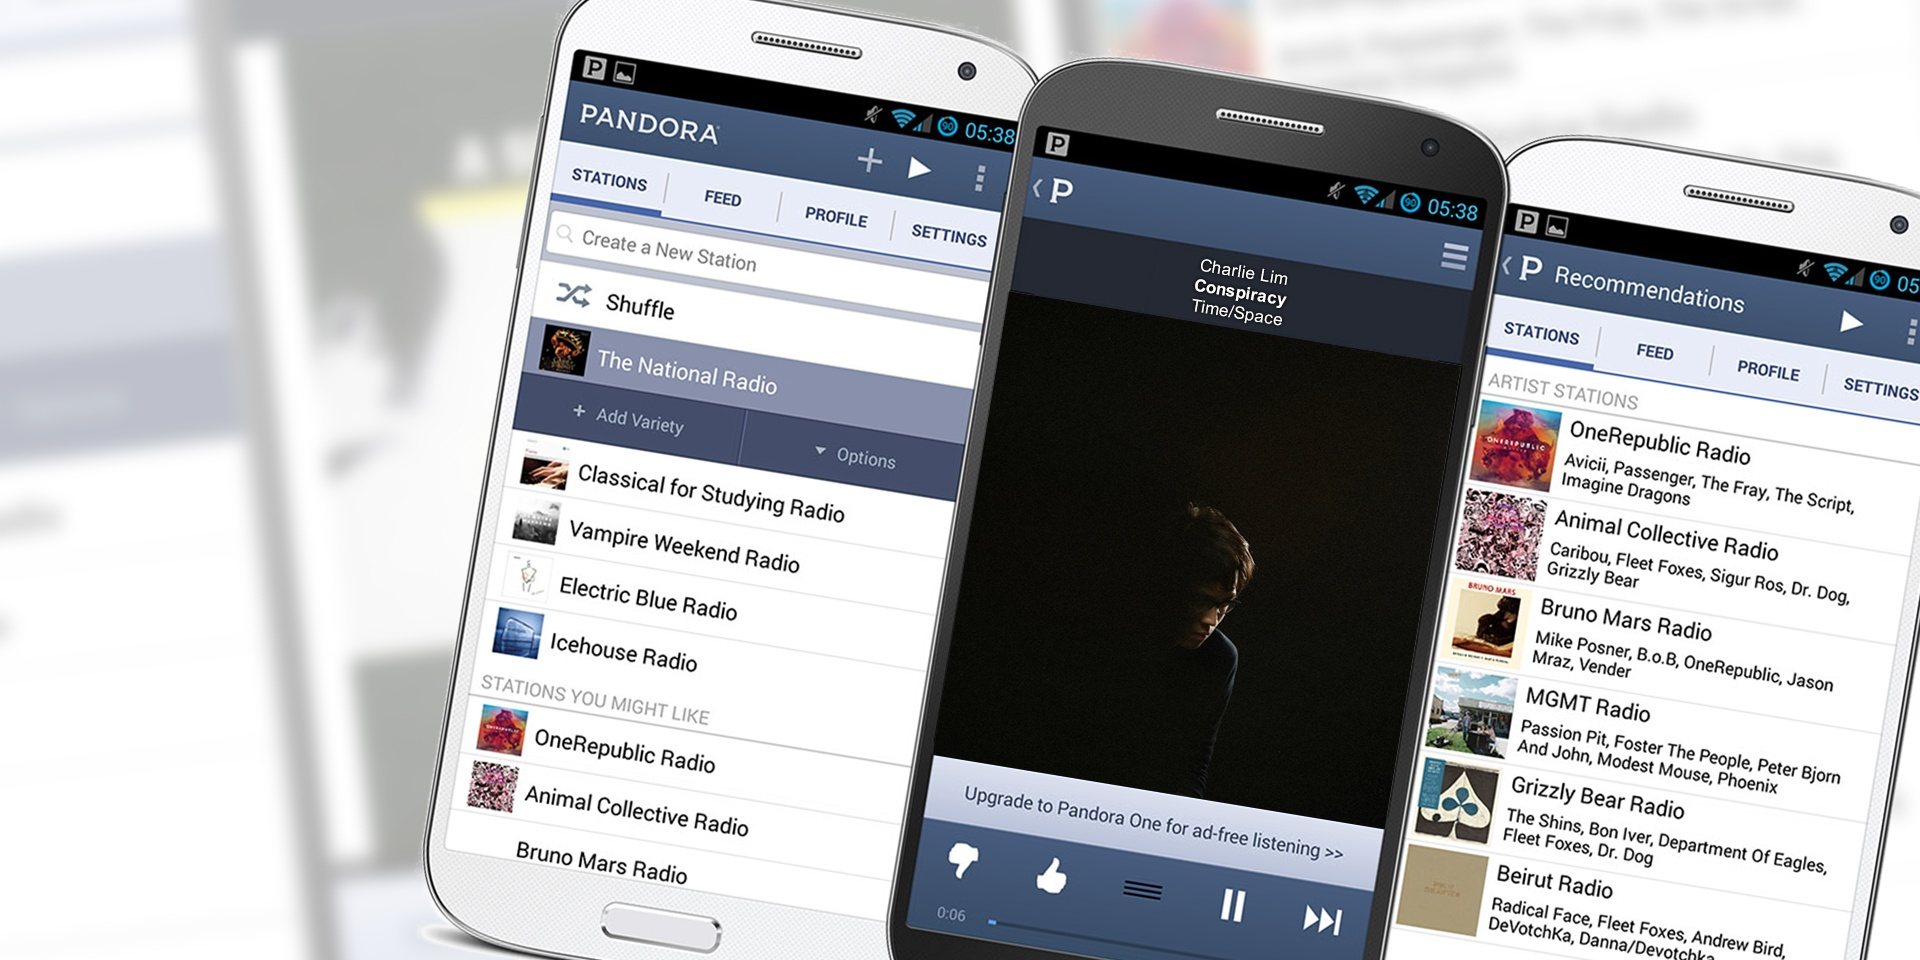 Singapore music will get a boost in the US with streaming service Pandora